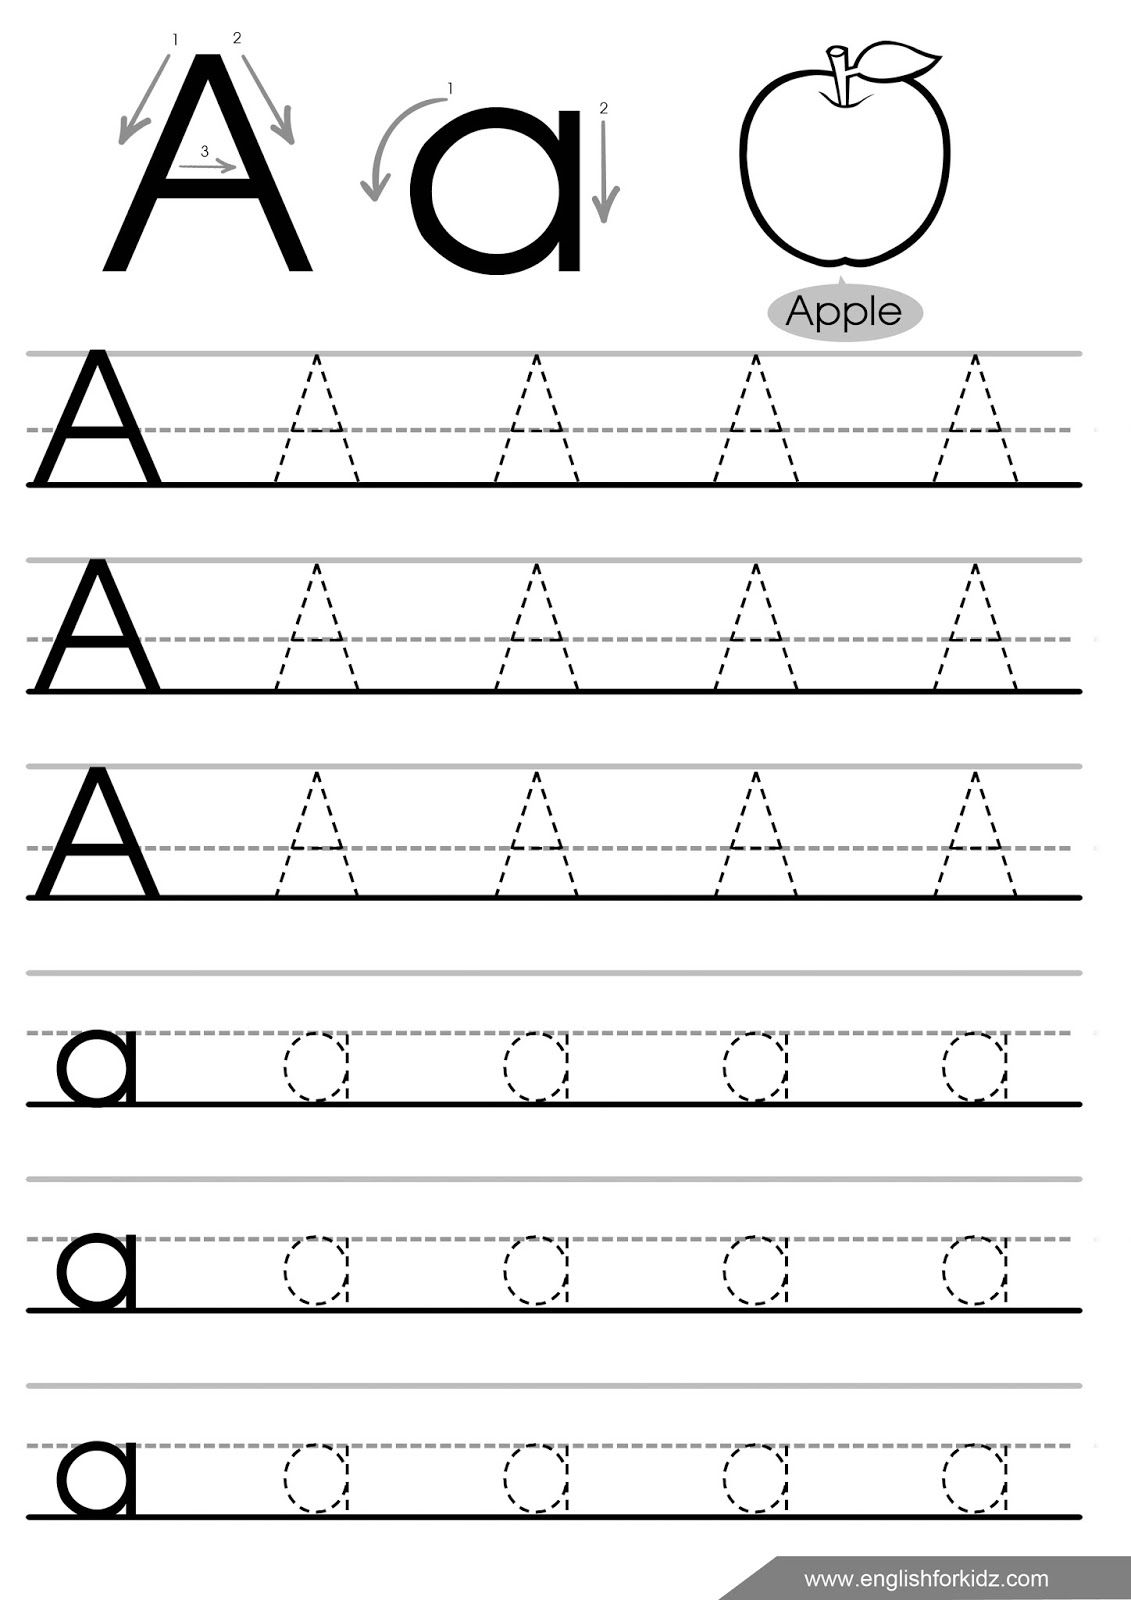 letter tracing worksheets fun for the kiddies letter tracing worksheets tracing letters. Black Bedroom Furniture Sets. Home Design Ideas